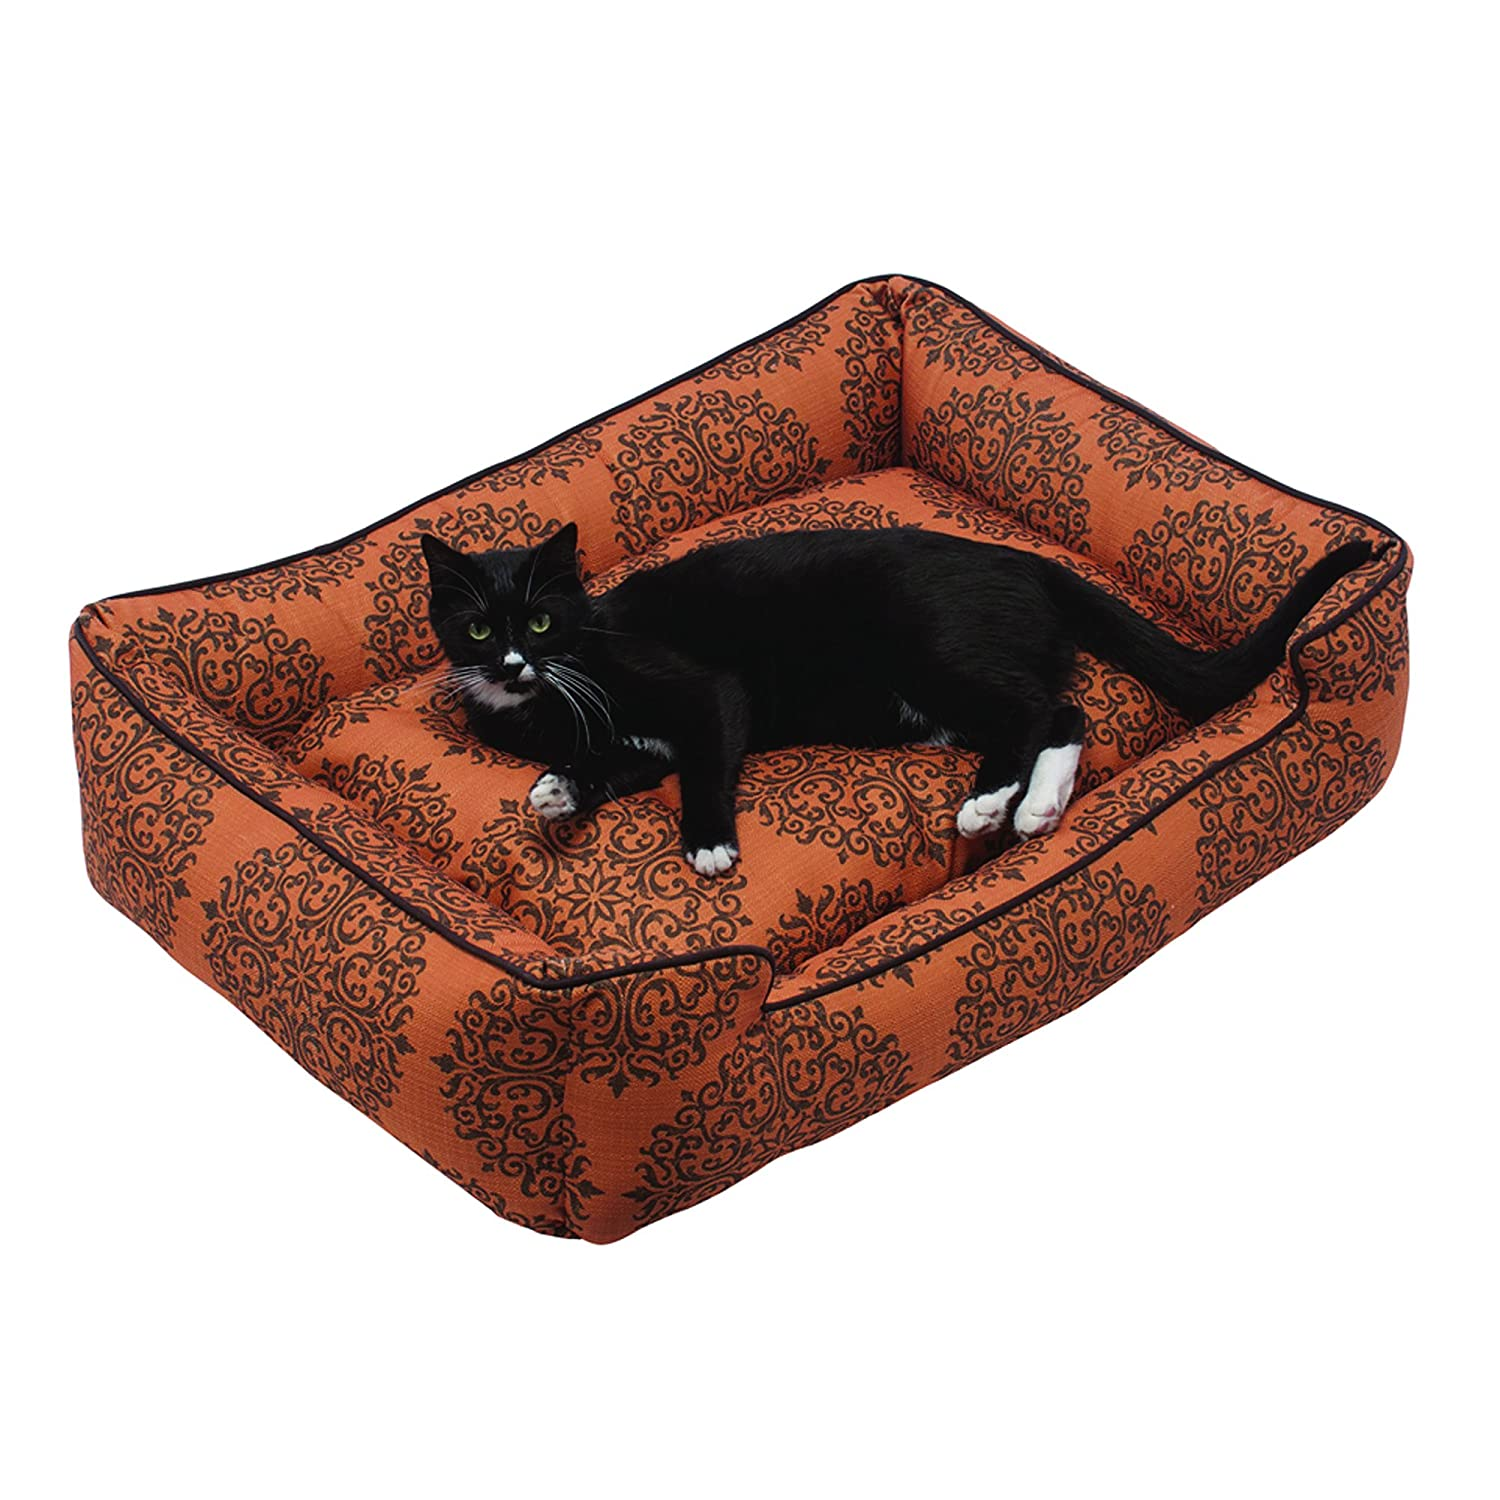 Milan orange X-Large 48x40x12 Milan orange X-Large 48x40x12 Jax & Bones Premium Cotton Blend Lounge Dog Bed, Milan orange, X-Large 48x40x12-Inch